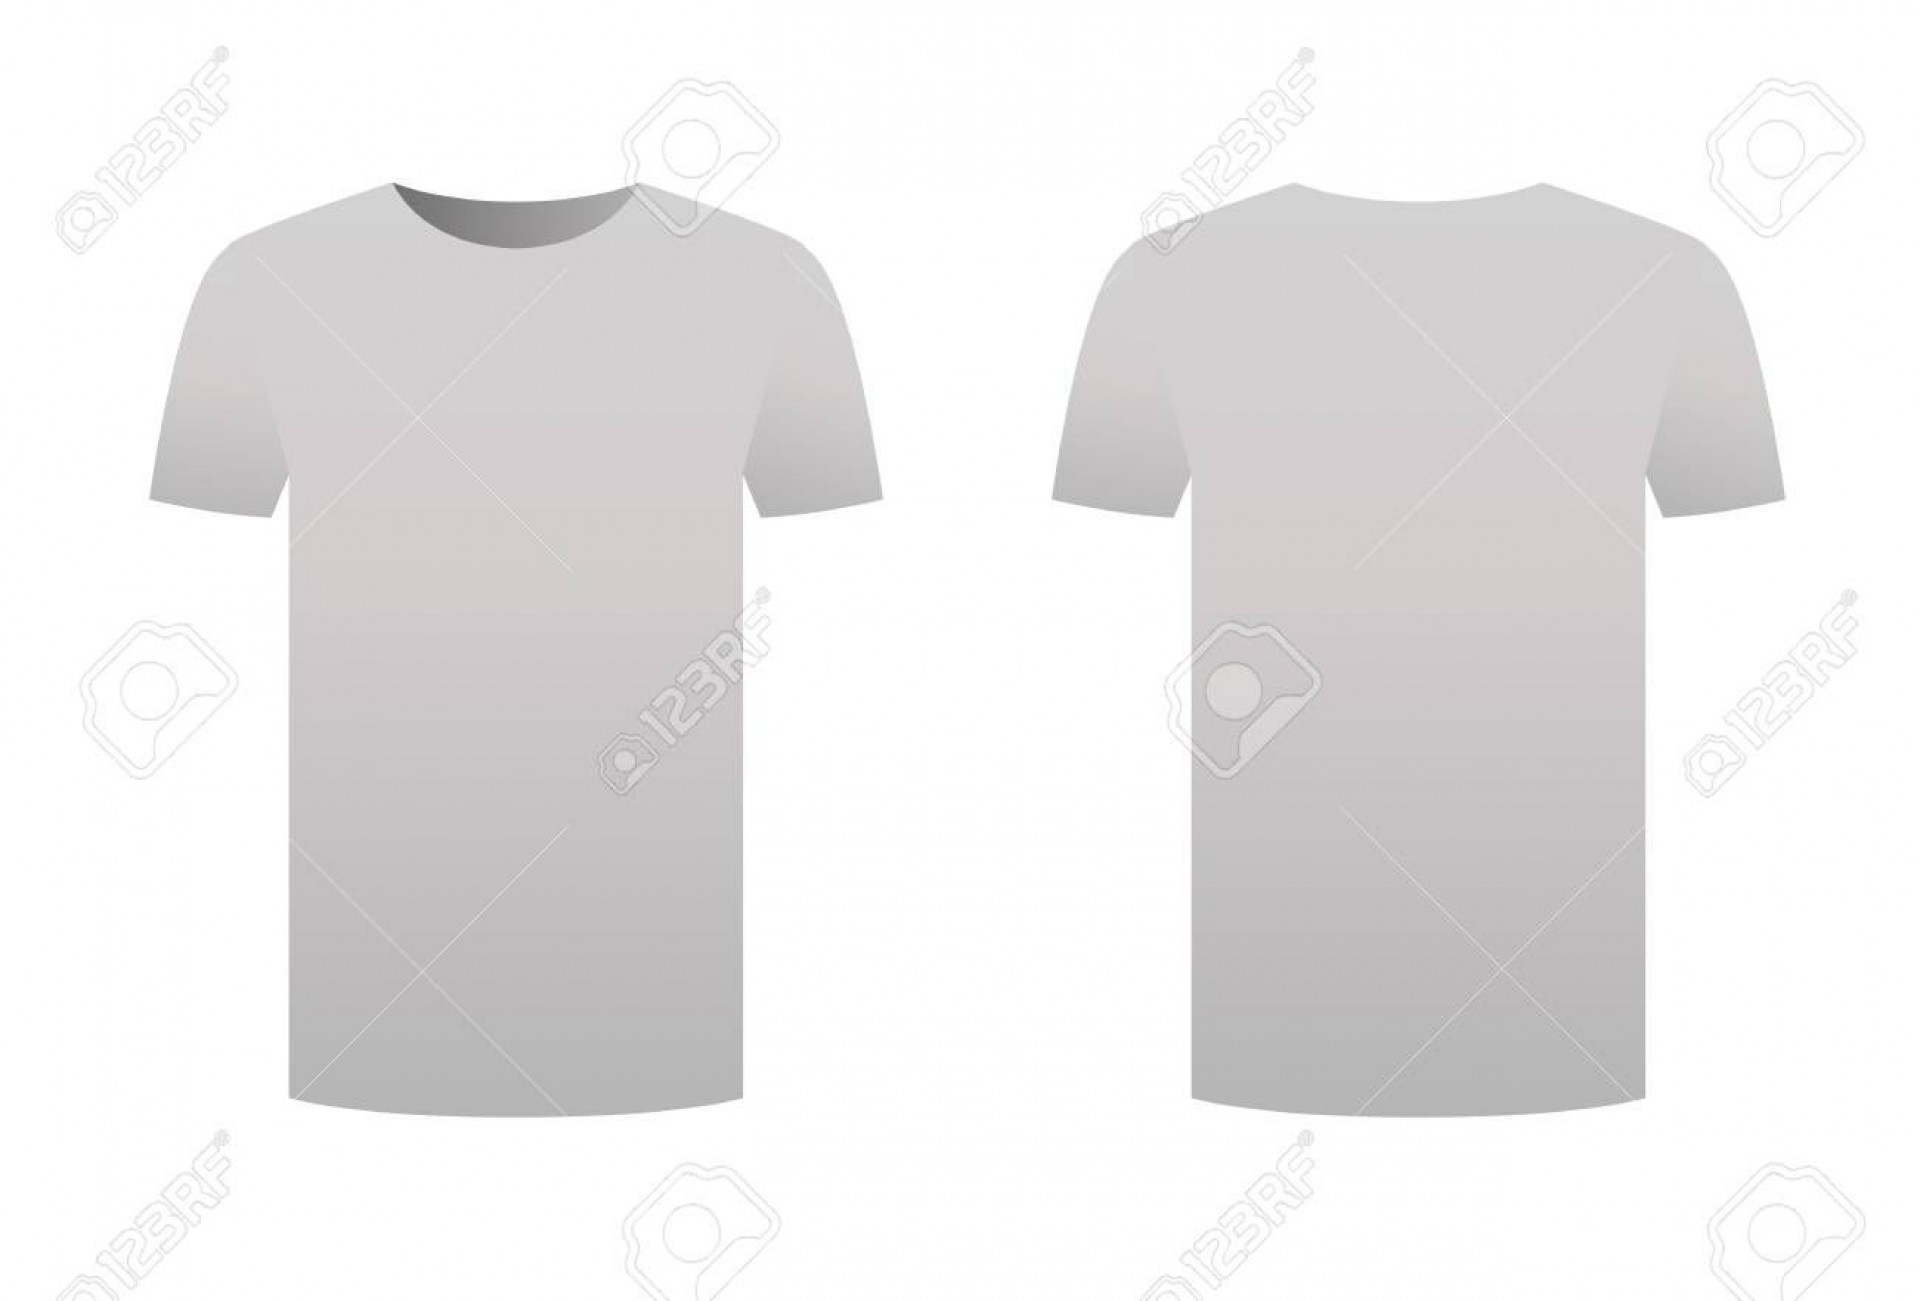 006 Awful T Shirt Template Design Inspiration  Psd Free Download Editable1920